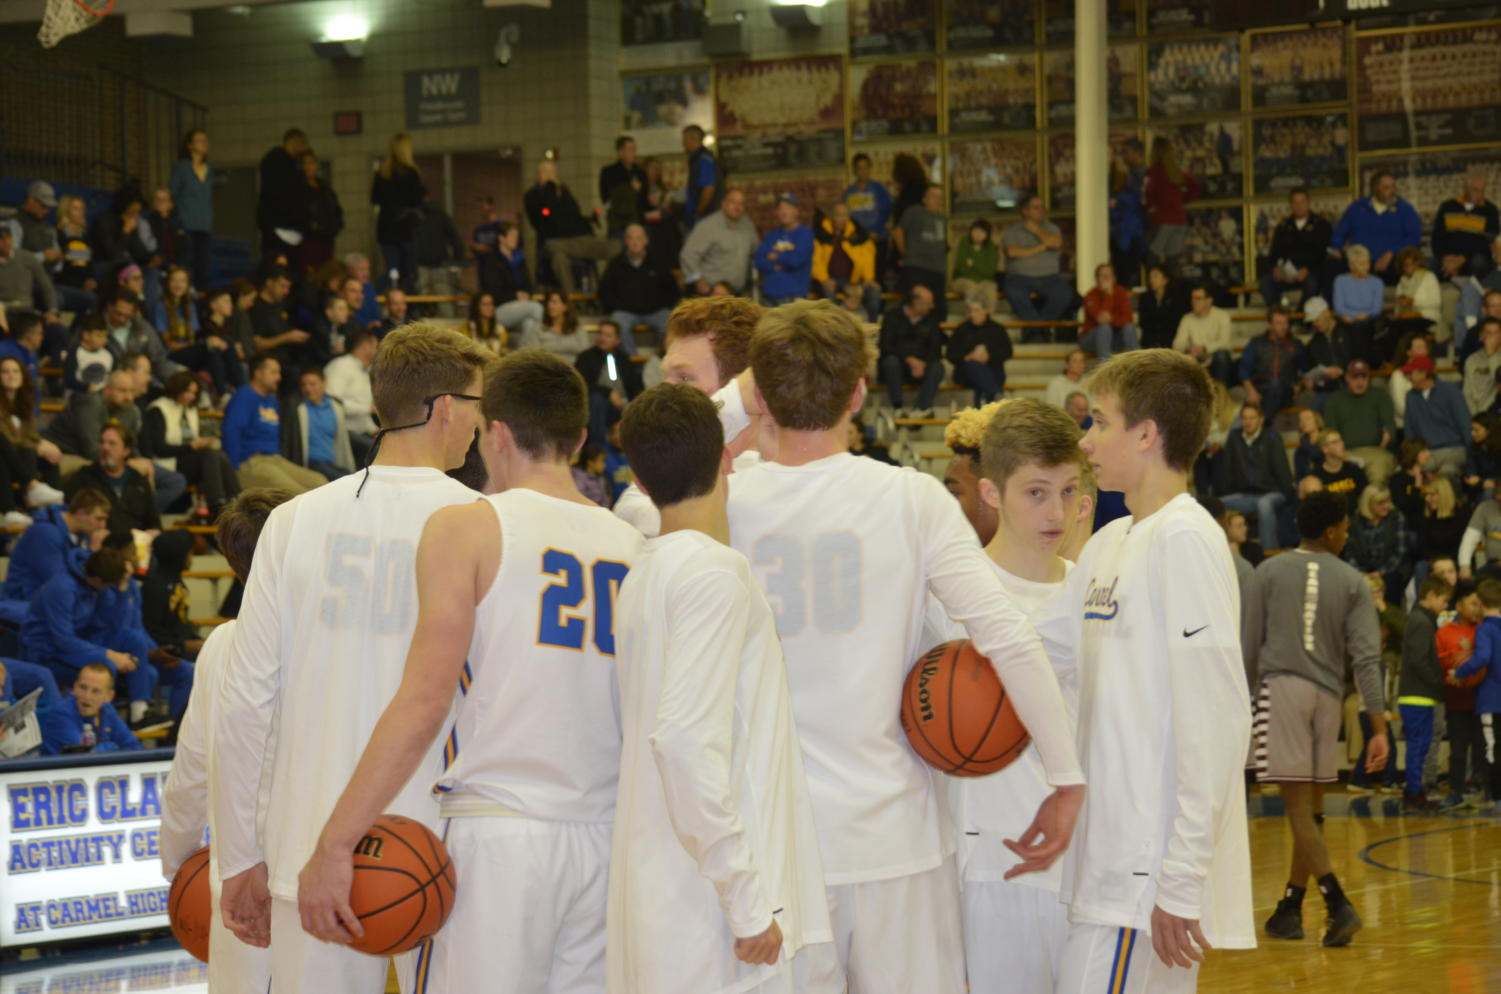 The men's basketball team huddles up before their game against Lawerence Central High School. They face Zionsville Community High School on Dec. 6 at CHS.